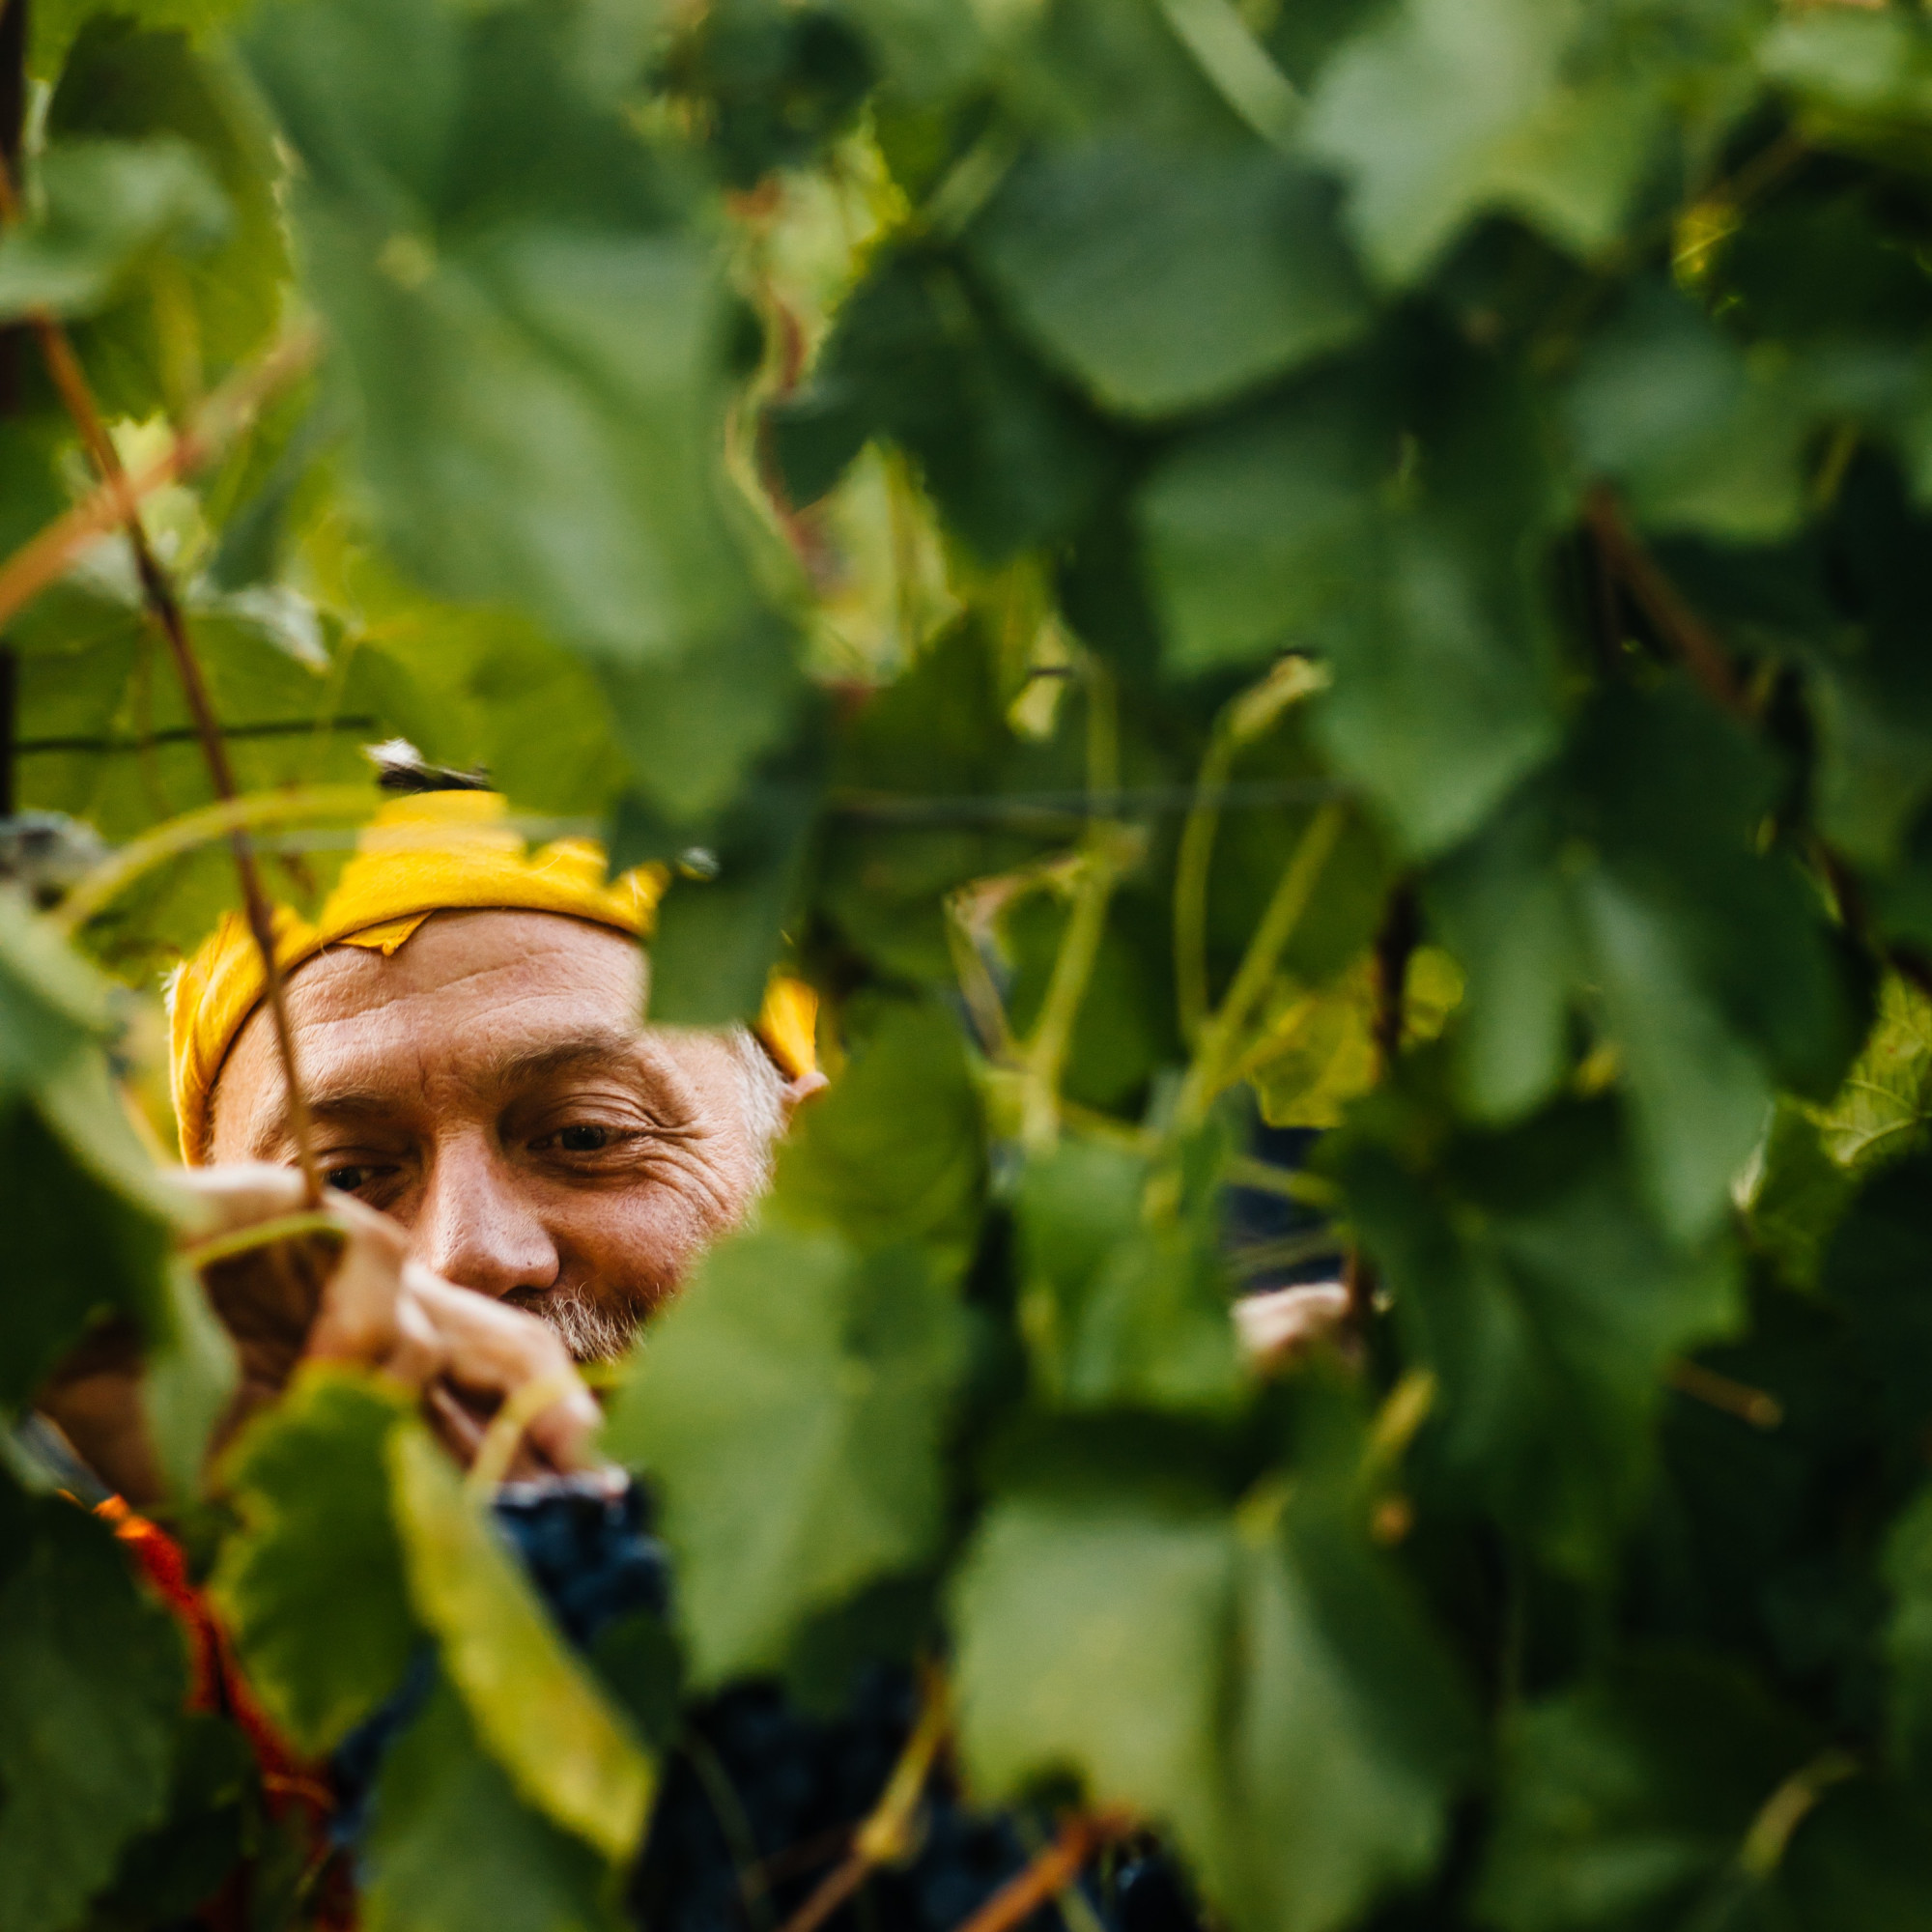 Winemaker Matthew Rorick's face peeks from behind grape leaves while picking grapes.